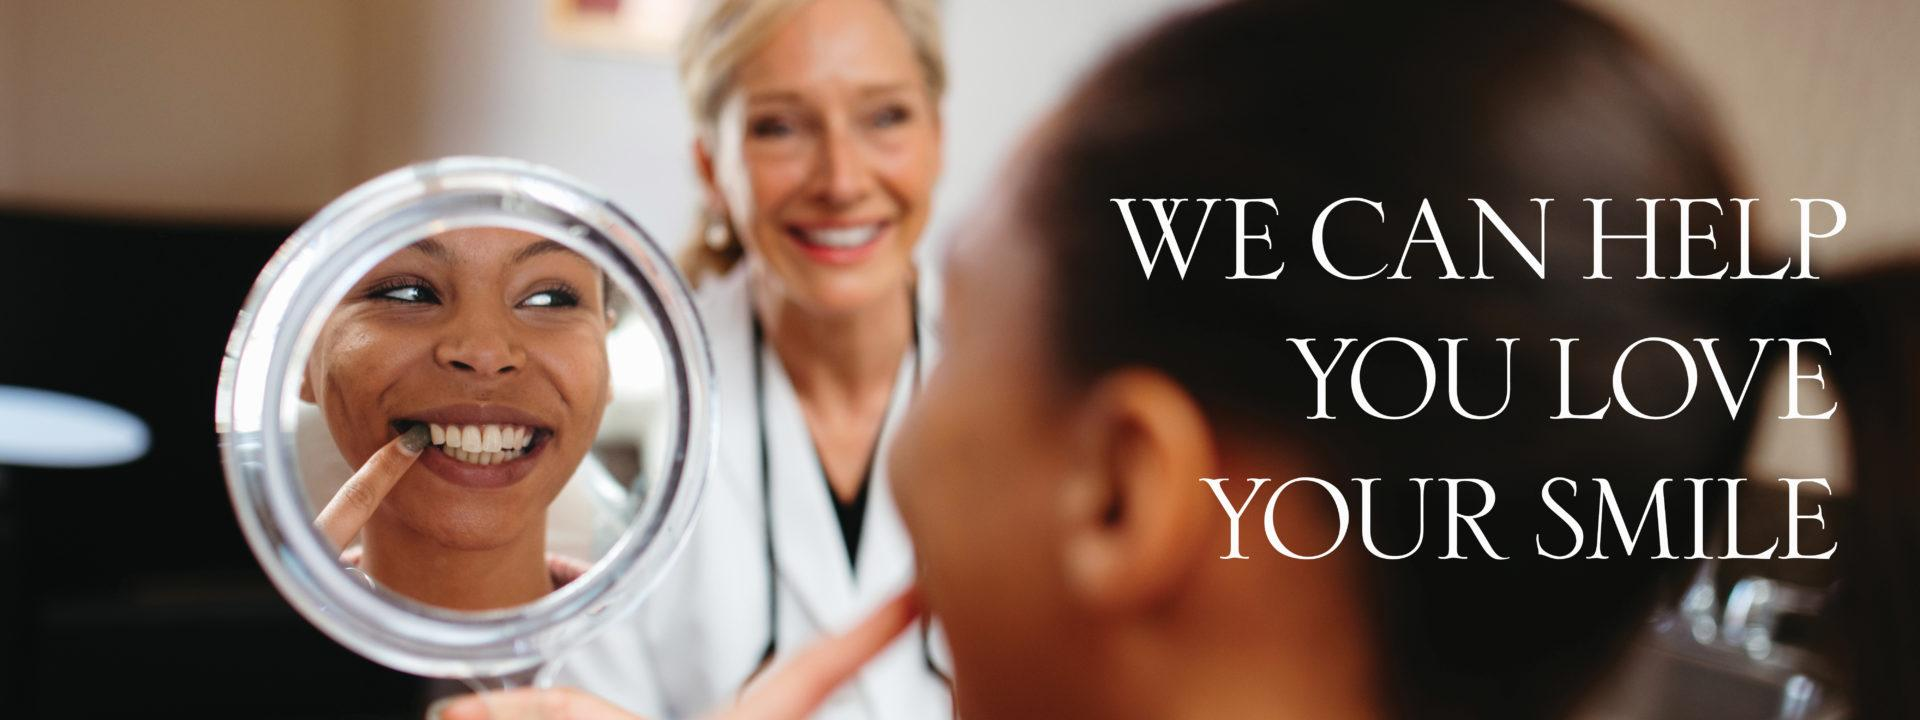 Woman looking into a mirror, pointing at her tooth that she wants to change while the dentist looks on. Text: We can help you love your smile. Angus Dentistry, Midlothian